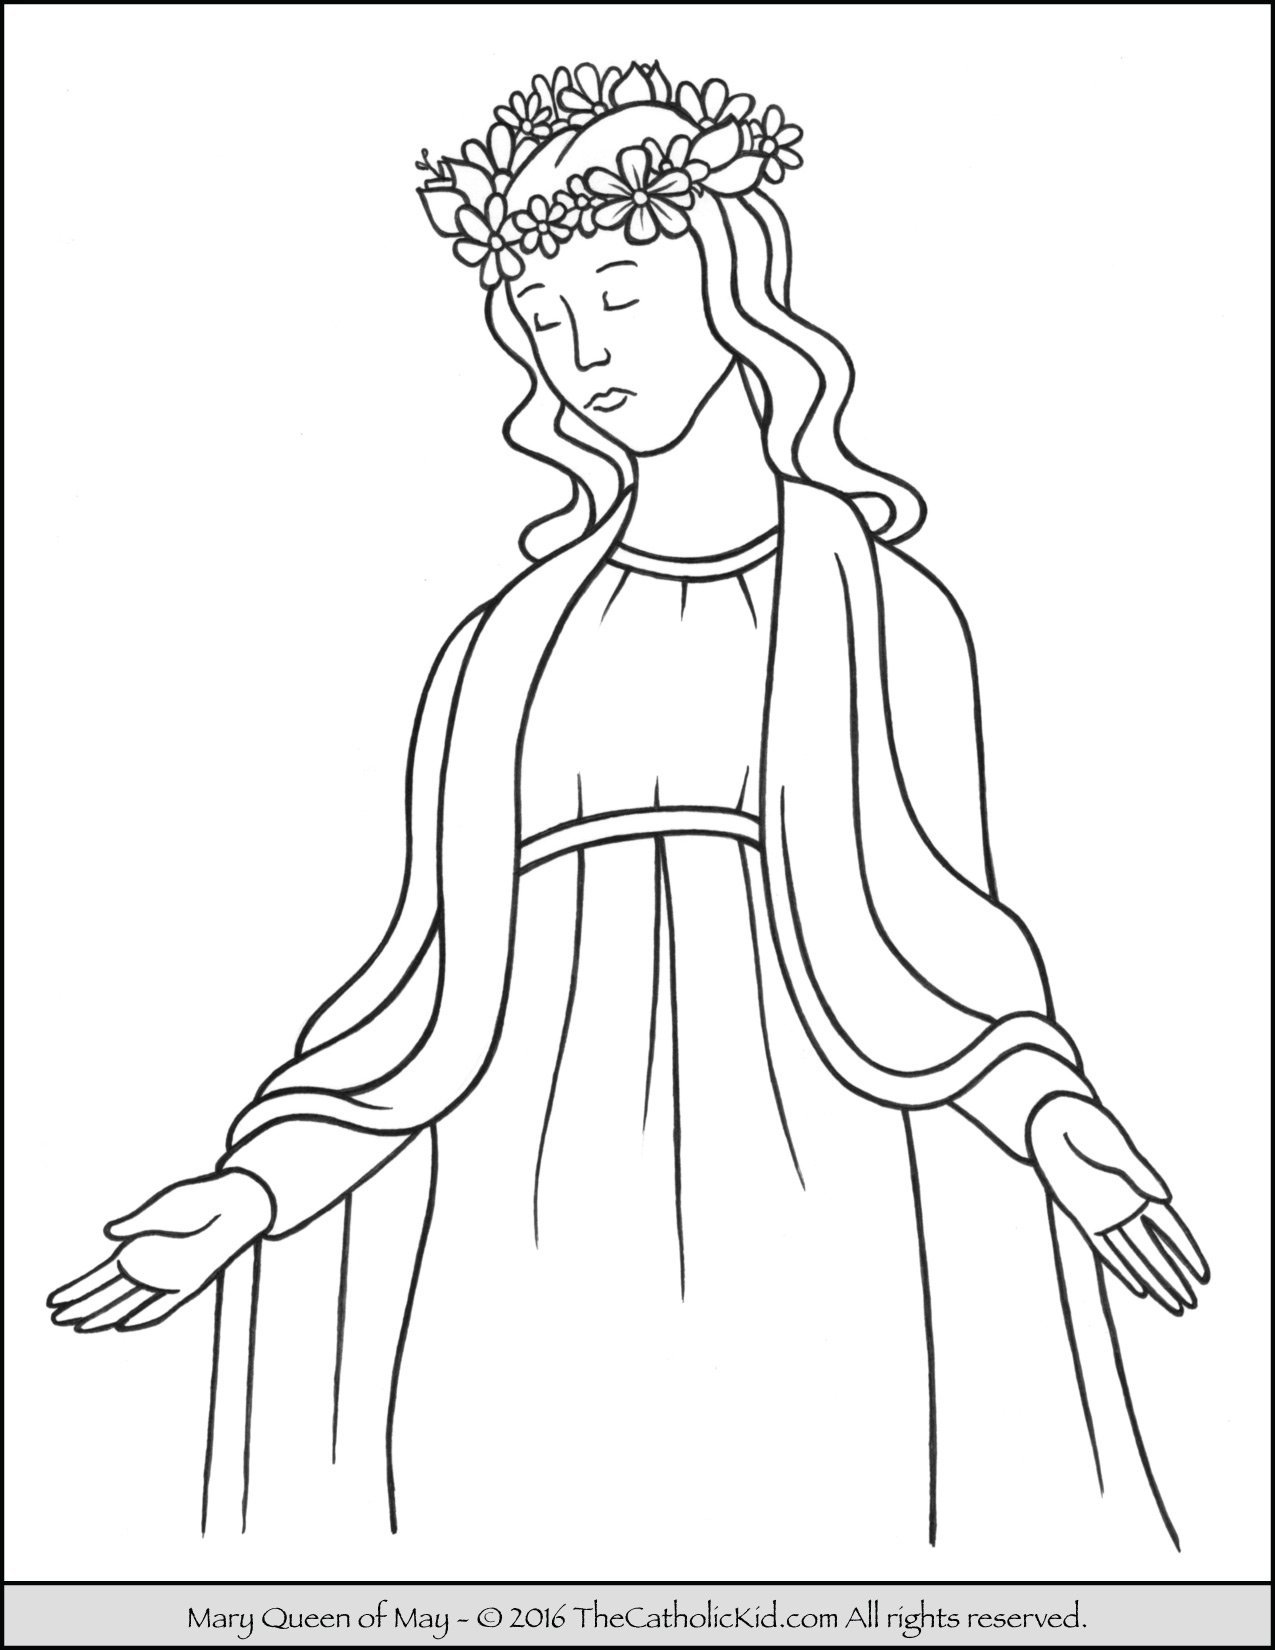 Mary Queen of May Crowning Coloring Page The Catholic Kid